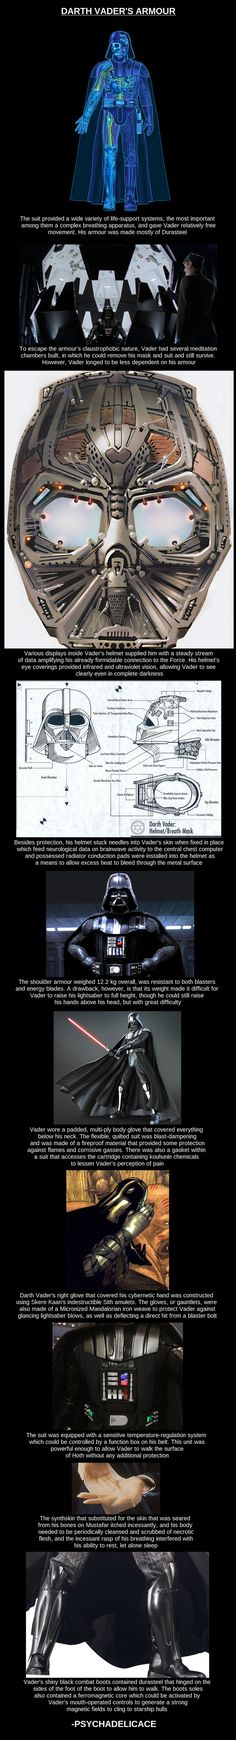 "Darth Vader's Armor.  Fun fact: Vader's boots actually pre-date his helmet - Lucas created a breath mask for his villain as he was originally walking on the outside of Leia's ship to enter it. The whole ""more machine than man"" idea evolved out of that concept."